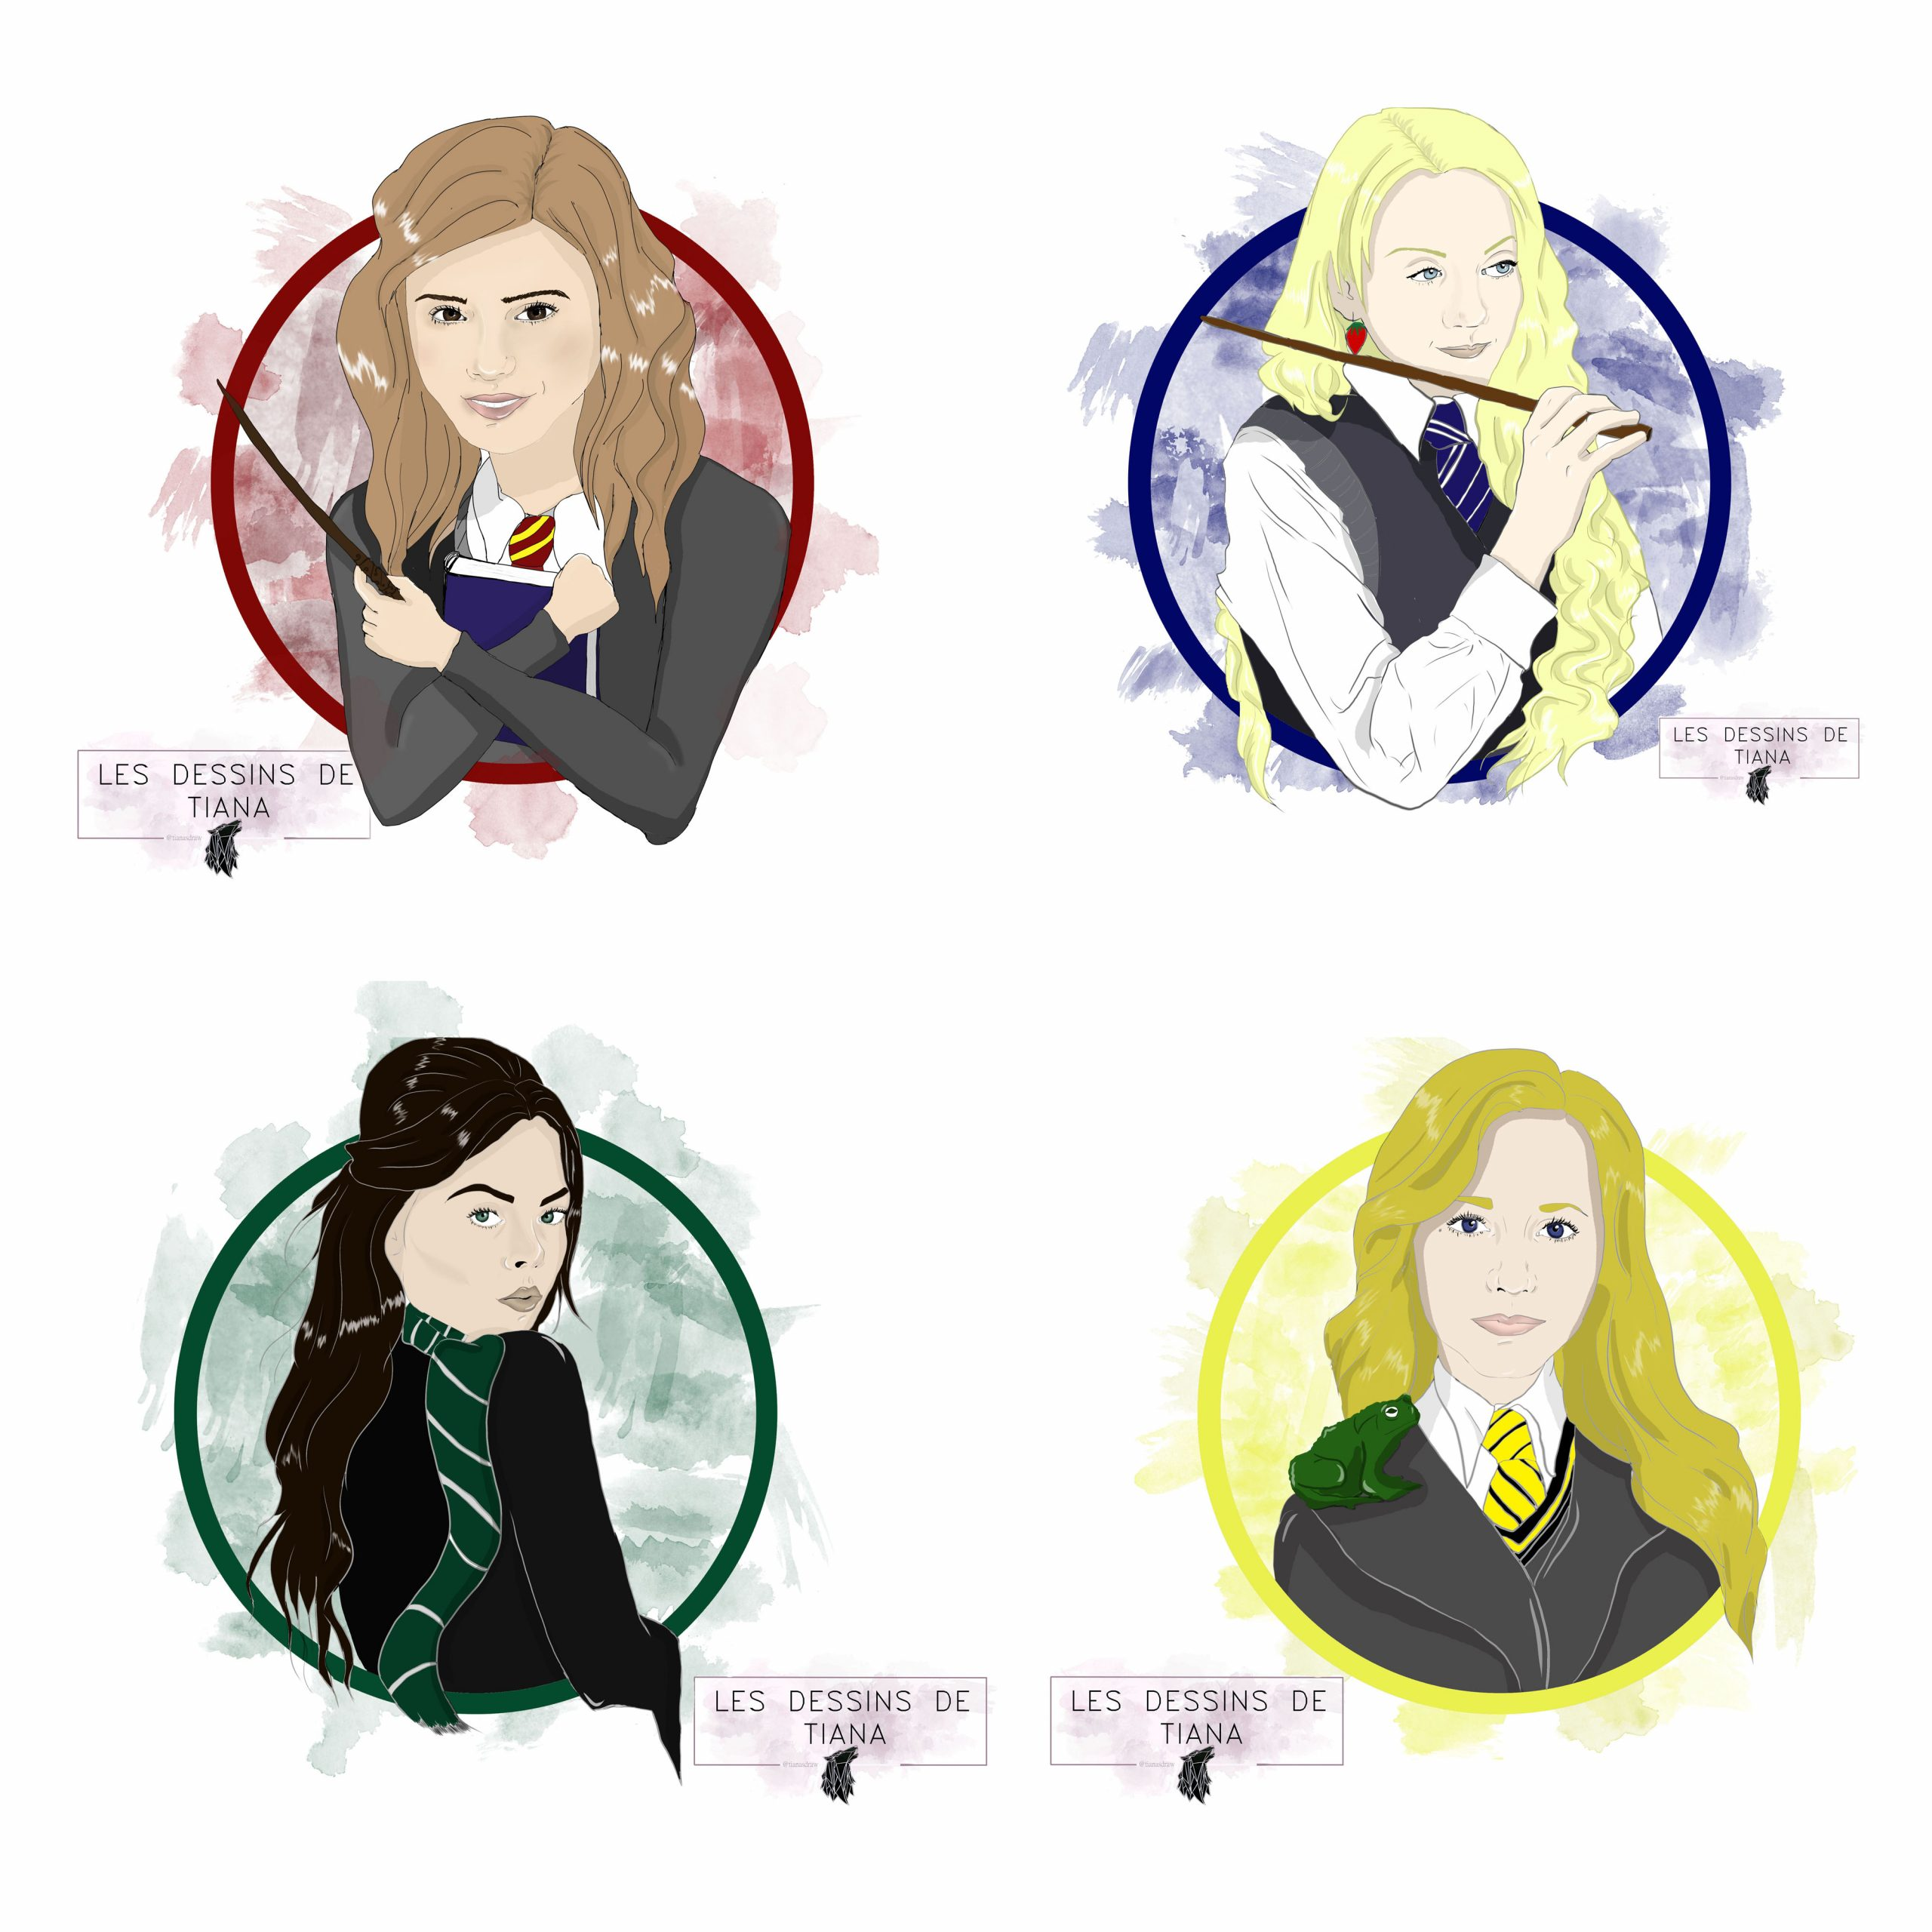 Portrait Personnalise Style Poudlard A4 (Harry Potter) serapportantà Dessin D Harry Potter